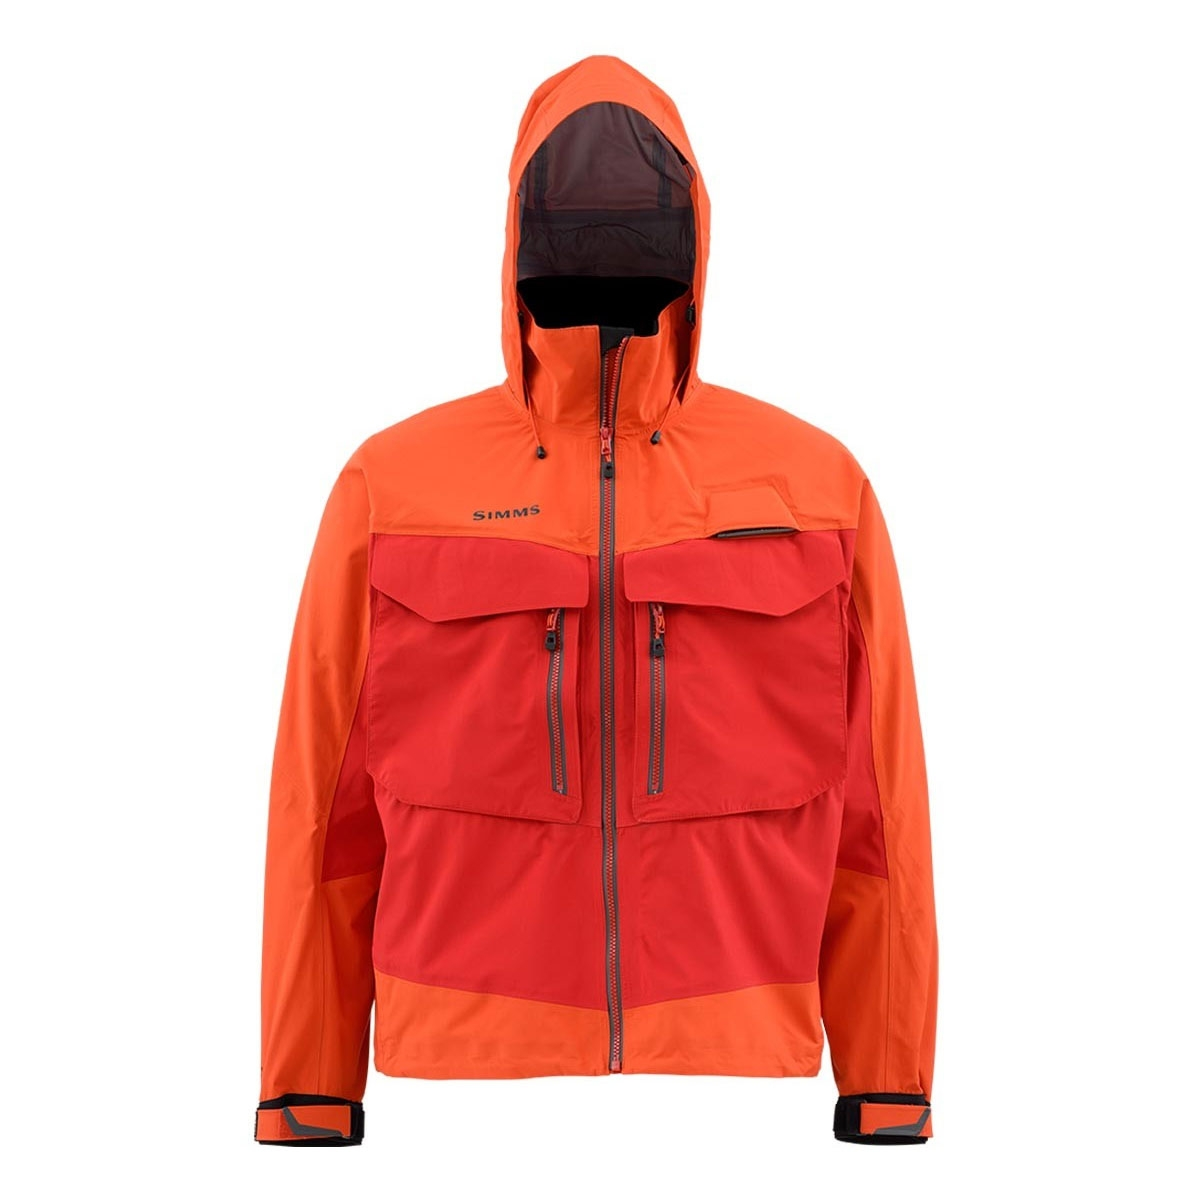 Simms G3 Guide Jacket Fury Orange Uttings Co Uk